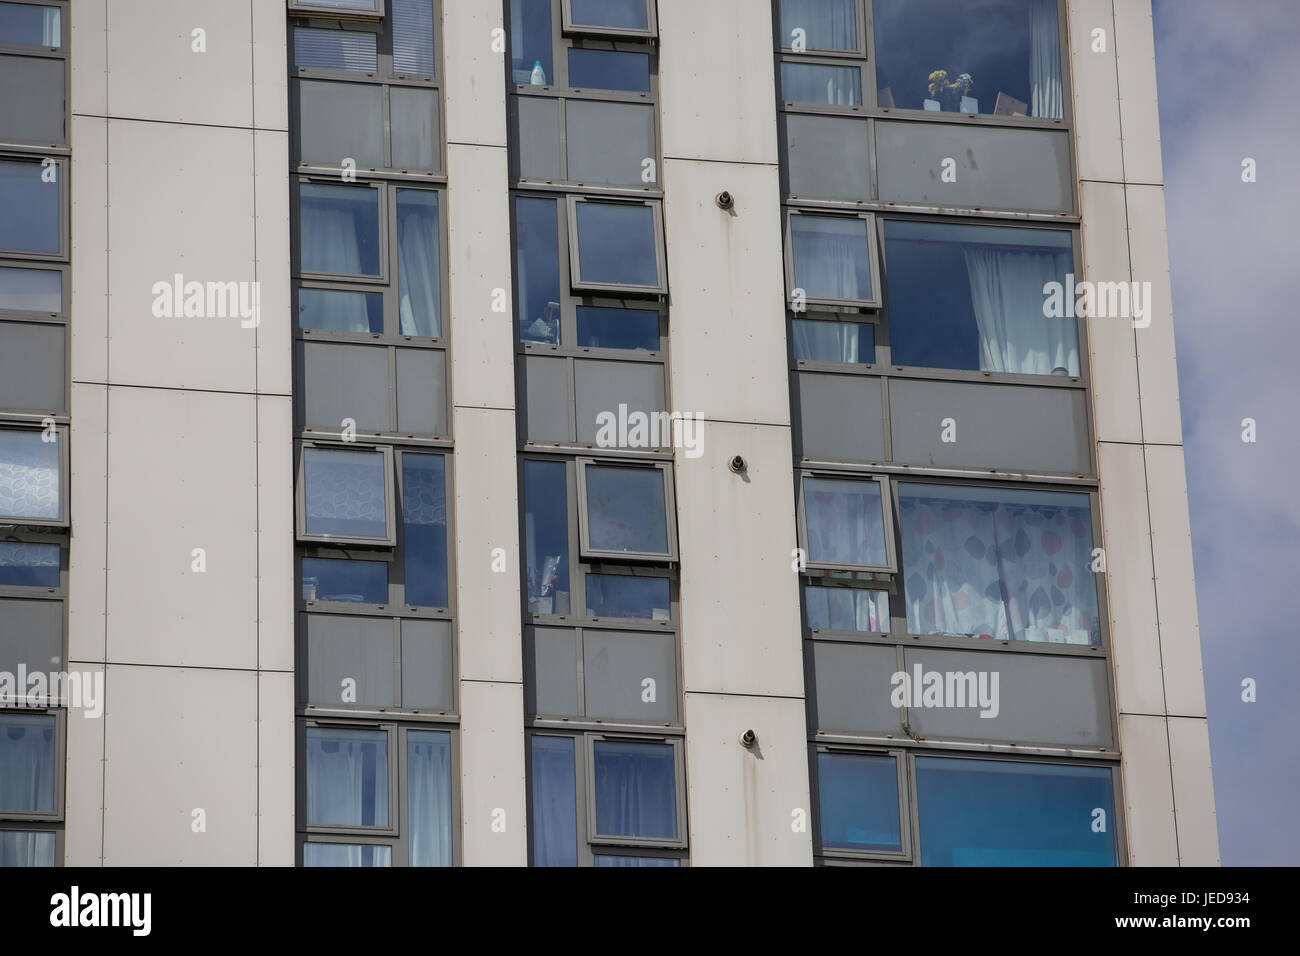 London, UK. 23rd June, 2017. Cladding panels on Dorney Tower in the Chalcots Estate in Camden. 600 households in Stock Photo